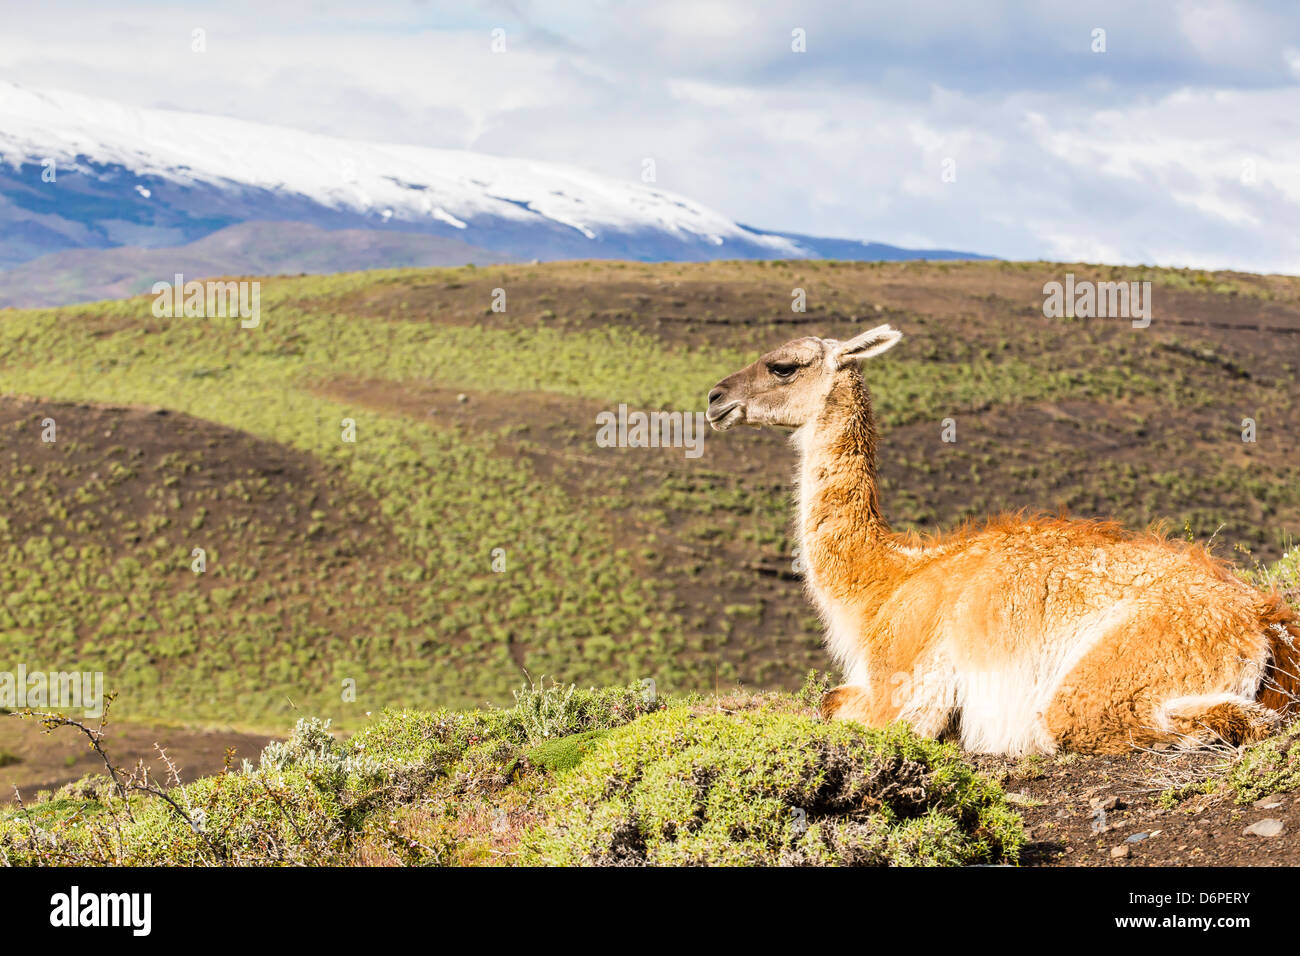 Adult guanacos (Lama guanicoe), Torres del Paine National Park, Patagonia, Chile, South America - Stock Image